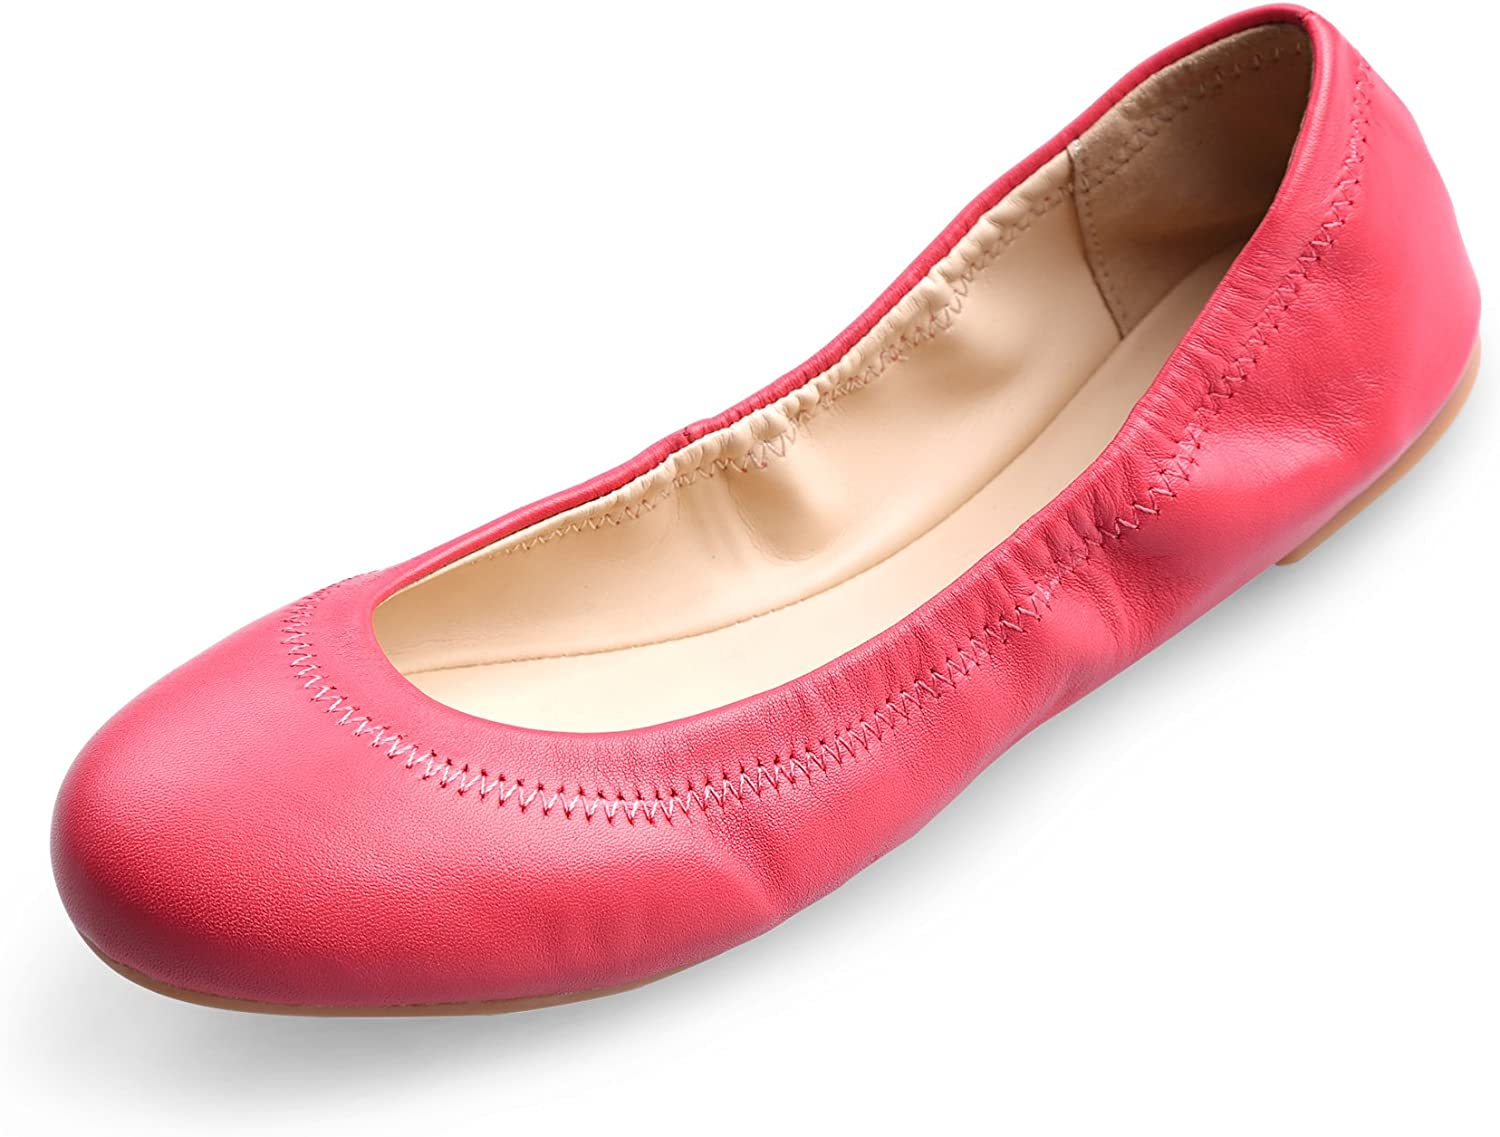 Collocation-Online Shallow Flats 2019 New Spring Wind with All-Match Ms Loafer Shoes Fashion Female Students,Wine Red,6